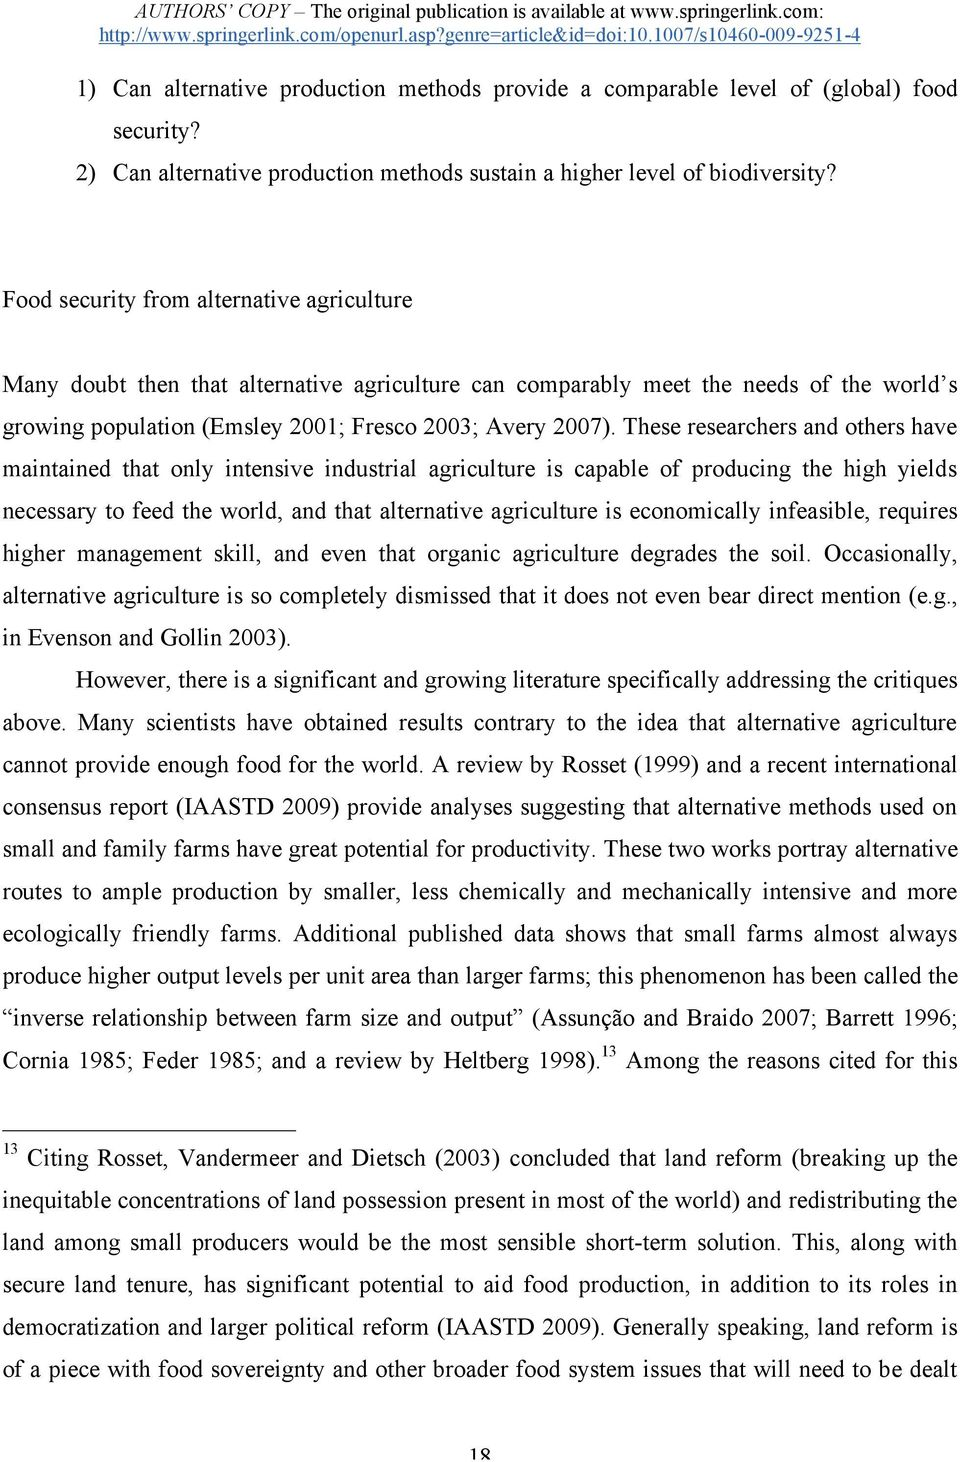 These researchers and others have maintained that only intensive industrial agriculture is capable of producing the high yields necessary to feed the world, and that alternative agriculture is